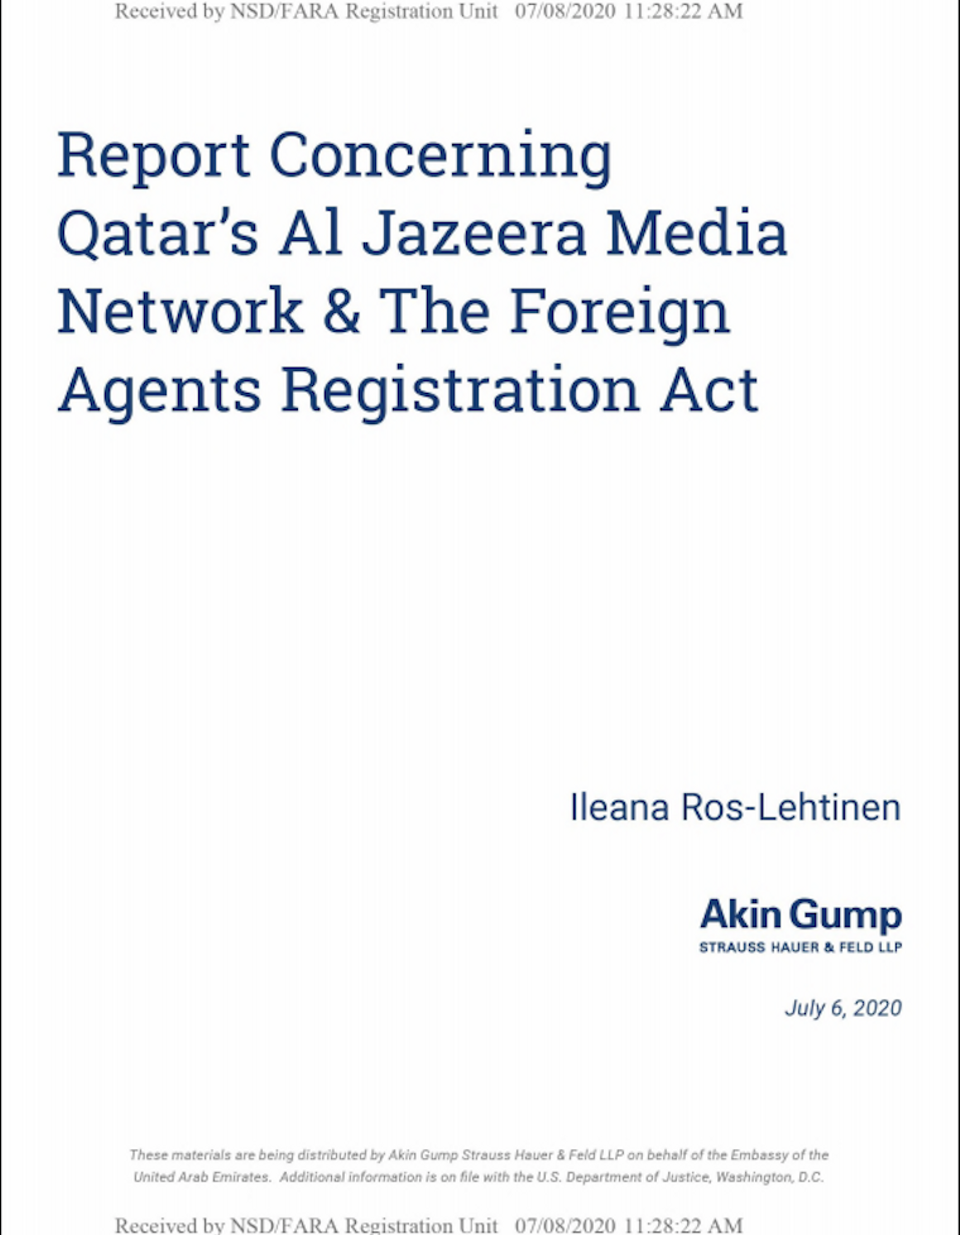 Screenshot from report lobbying to get Al Jazeera Media Network registered as a foreign agent written by former Congresswoman Ileana Ros-Lehtinen on behalf of Akin Gump, a firm lobbying for the UAE.